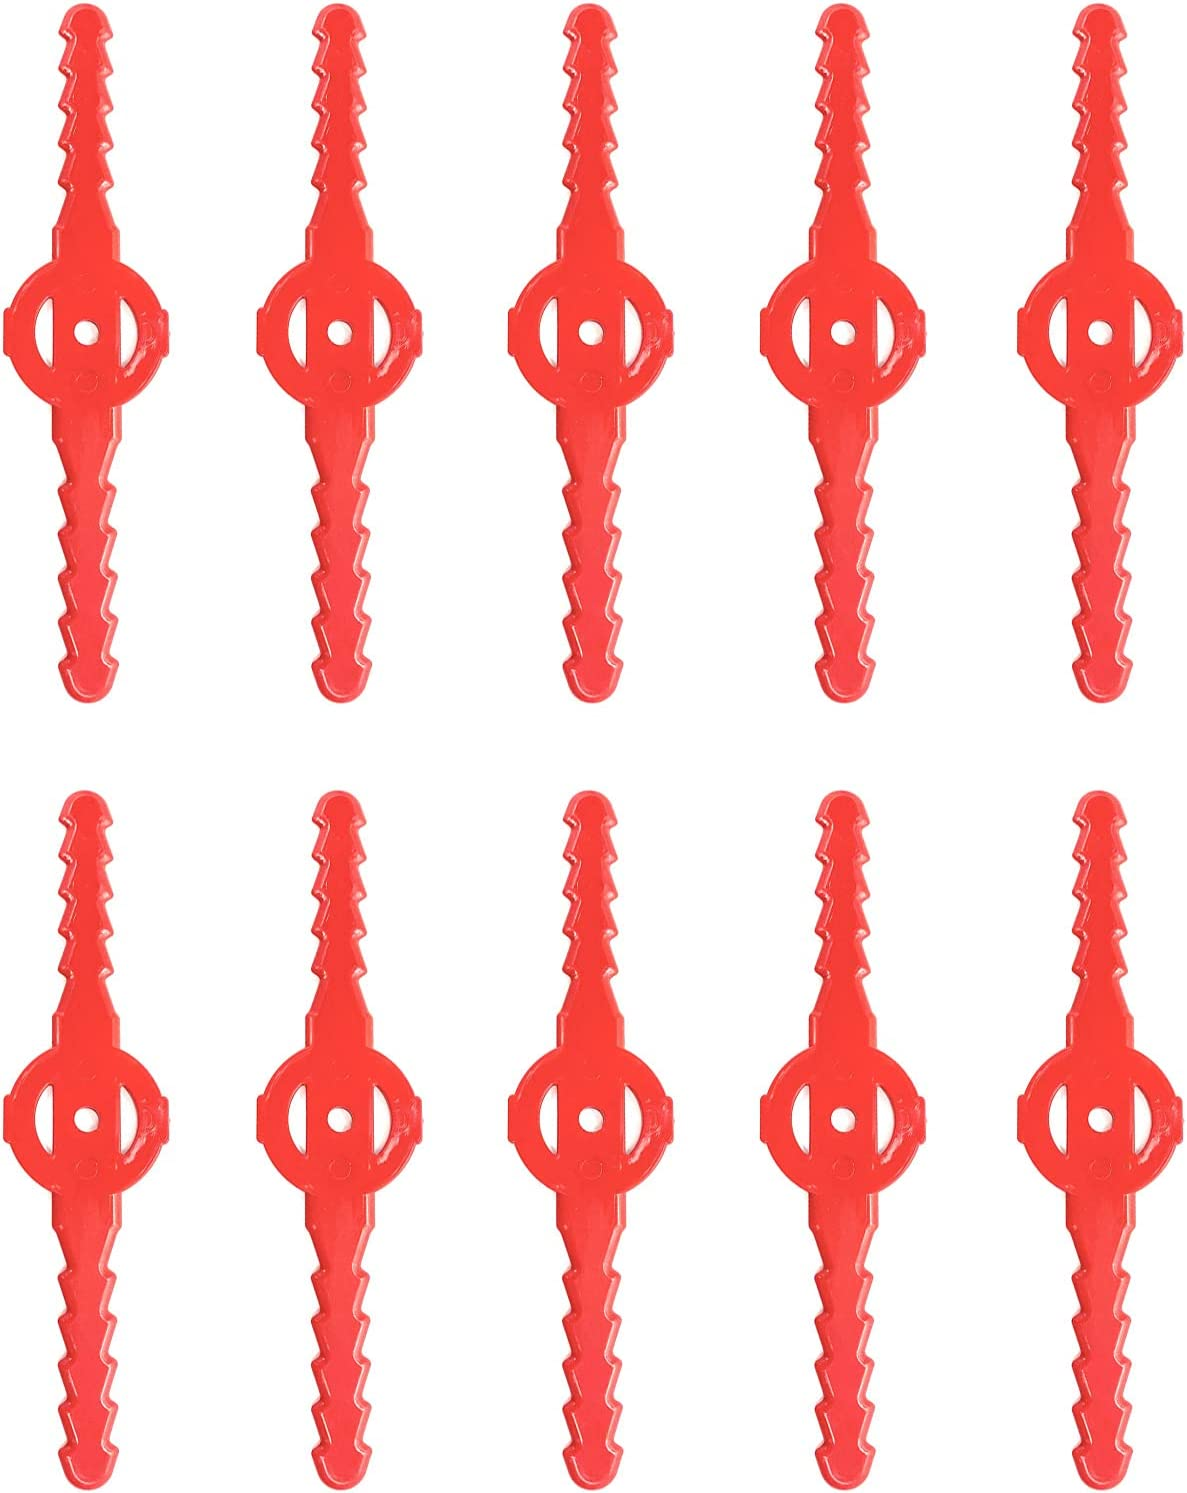 String Trimmer Head Blades Plastic Lawn Mower Blades Grass Trimmer Head Replacement Cutter Garden Tool Compatible with Cordless Grass Trimmer FH-GT120 (10, Red)